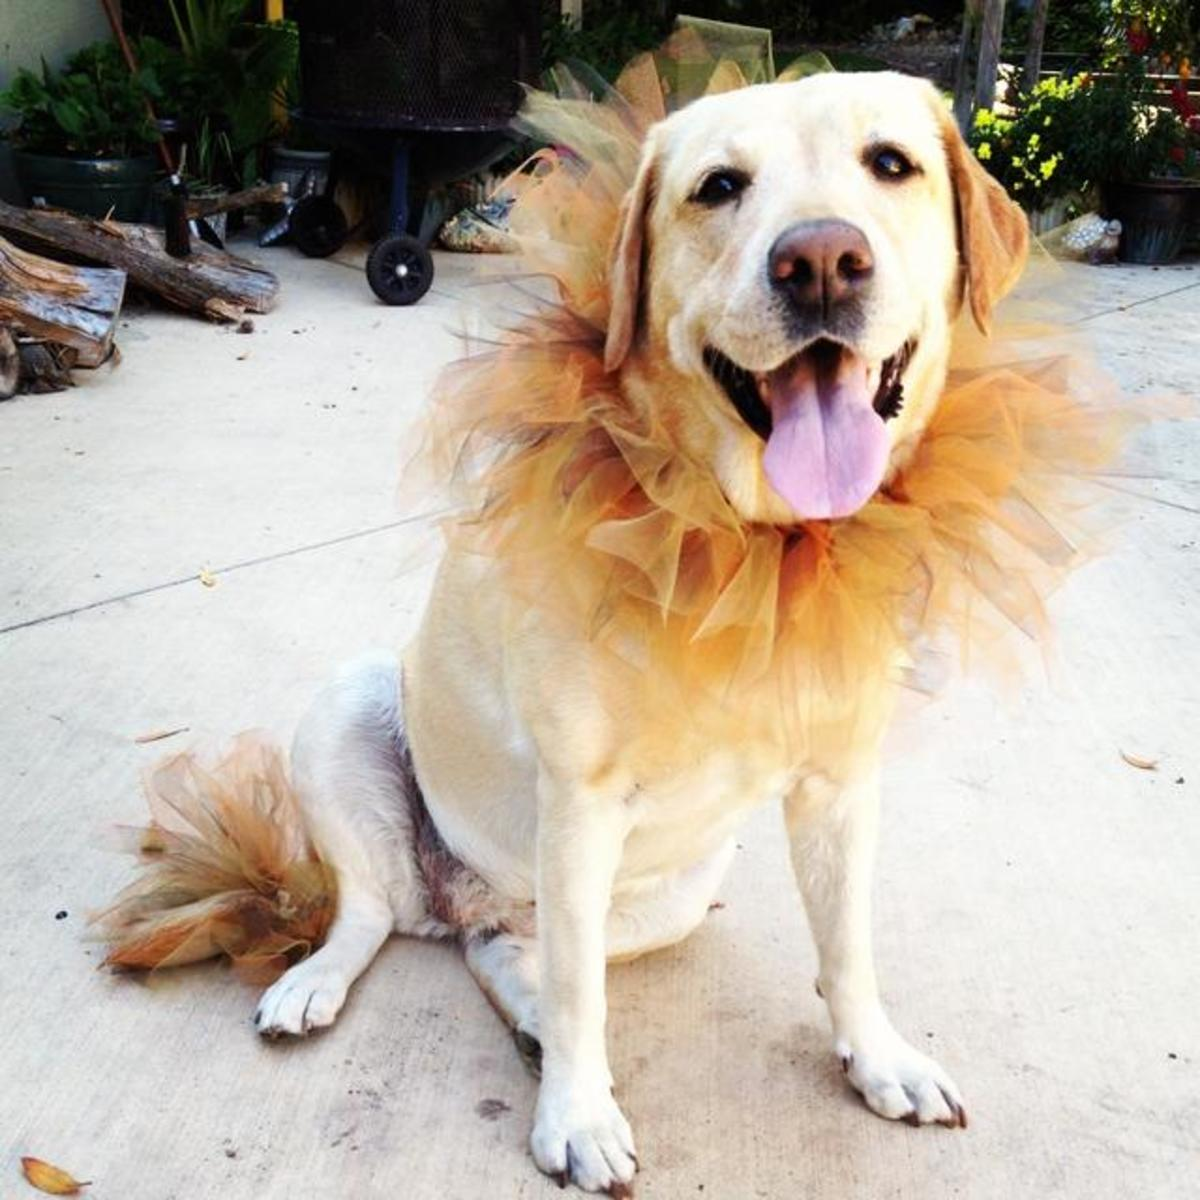 13-halloween-costume-ideas-for-your-dog-that-wont-drive-them-crazy